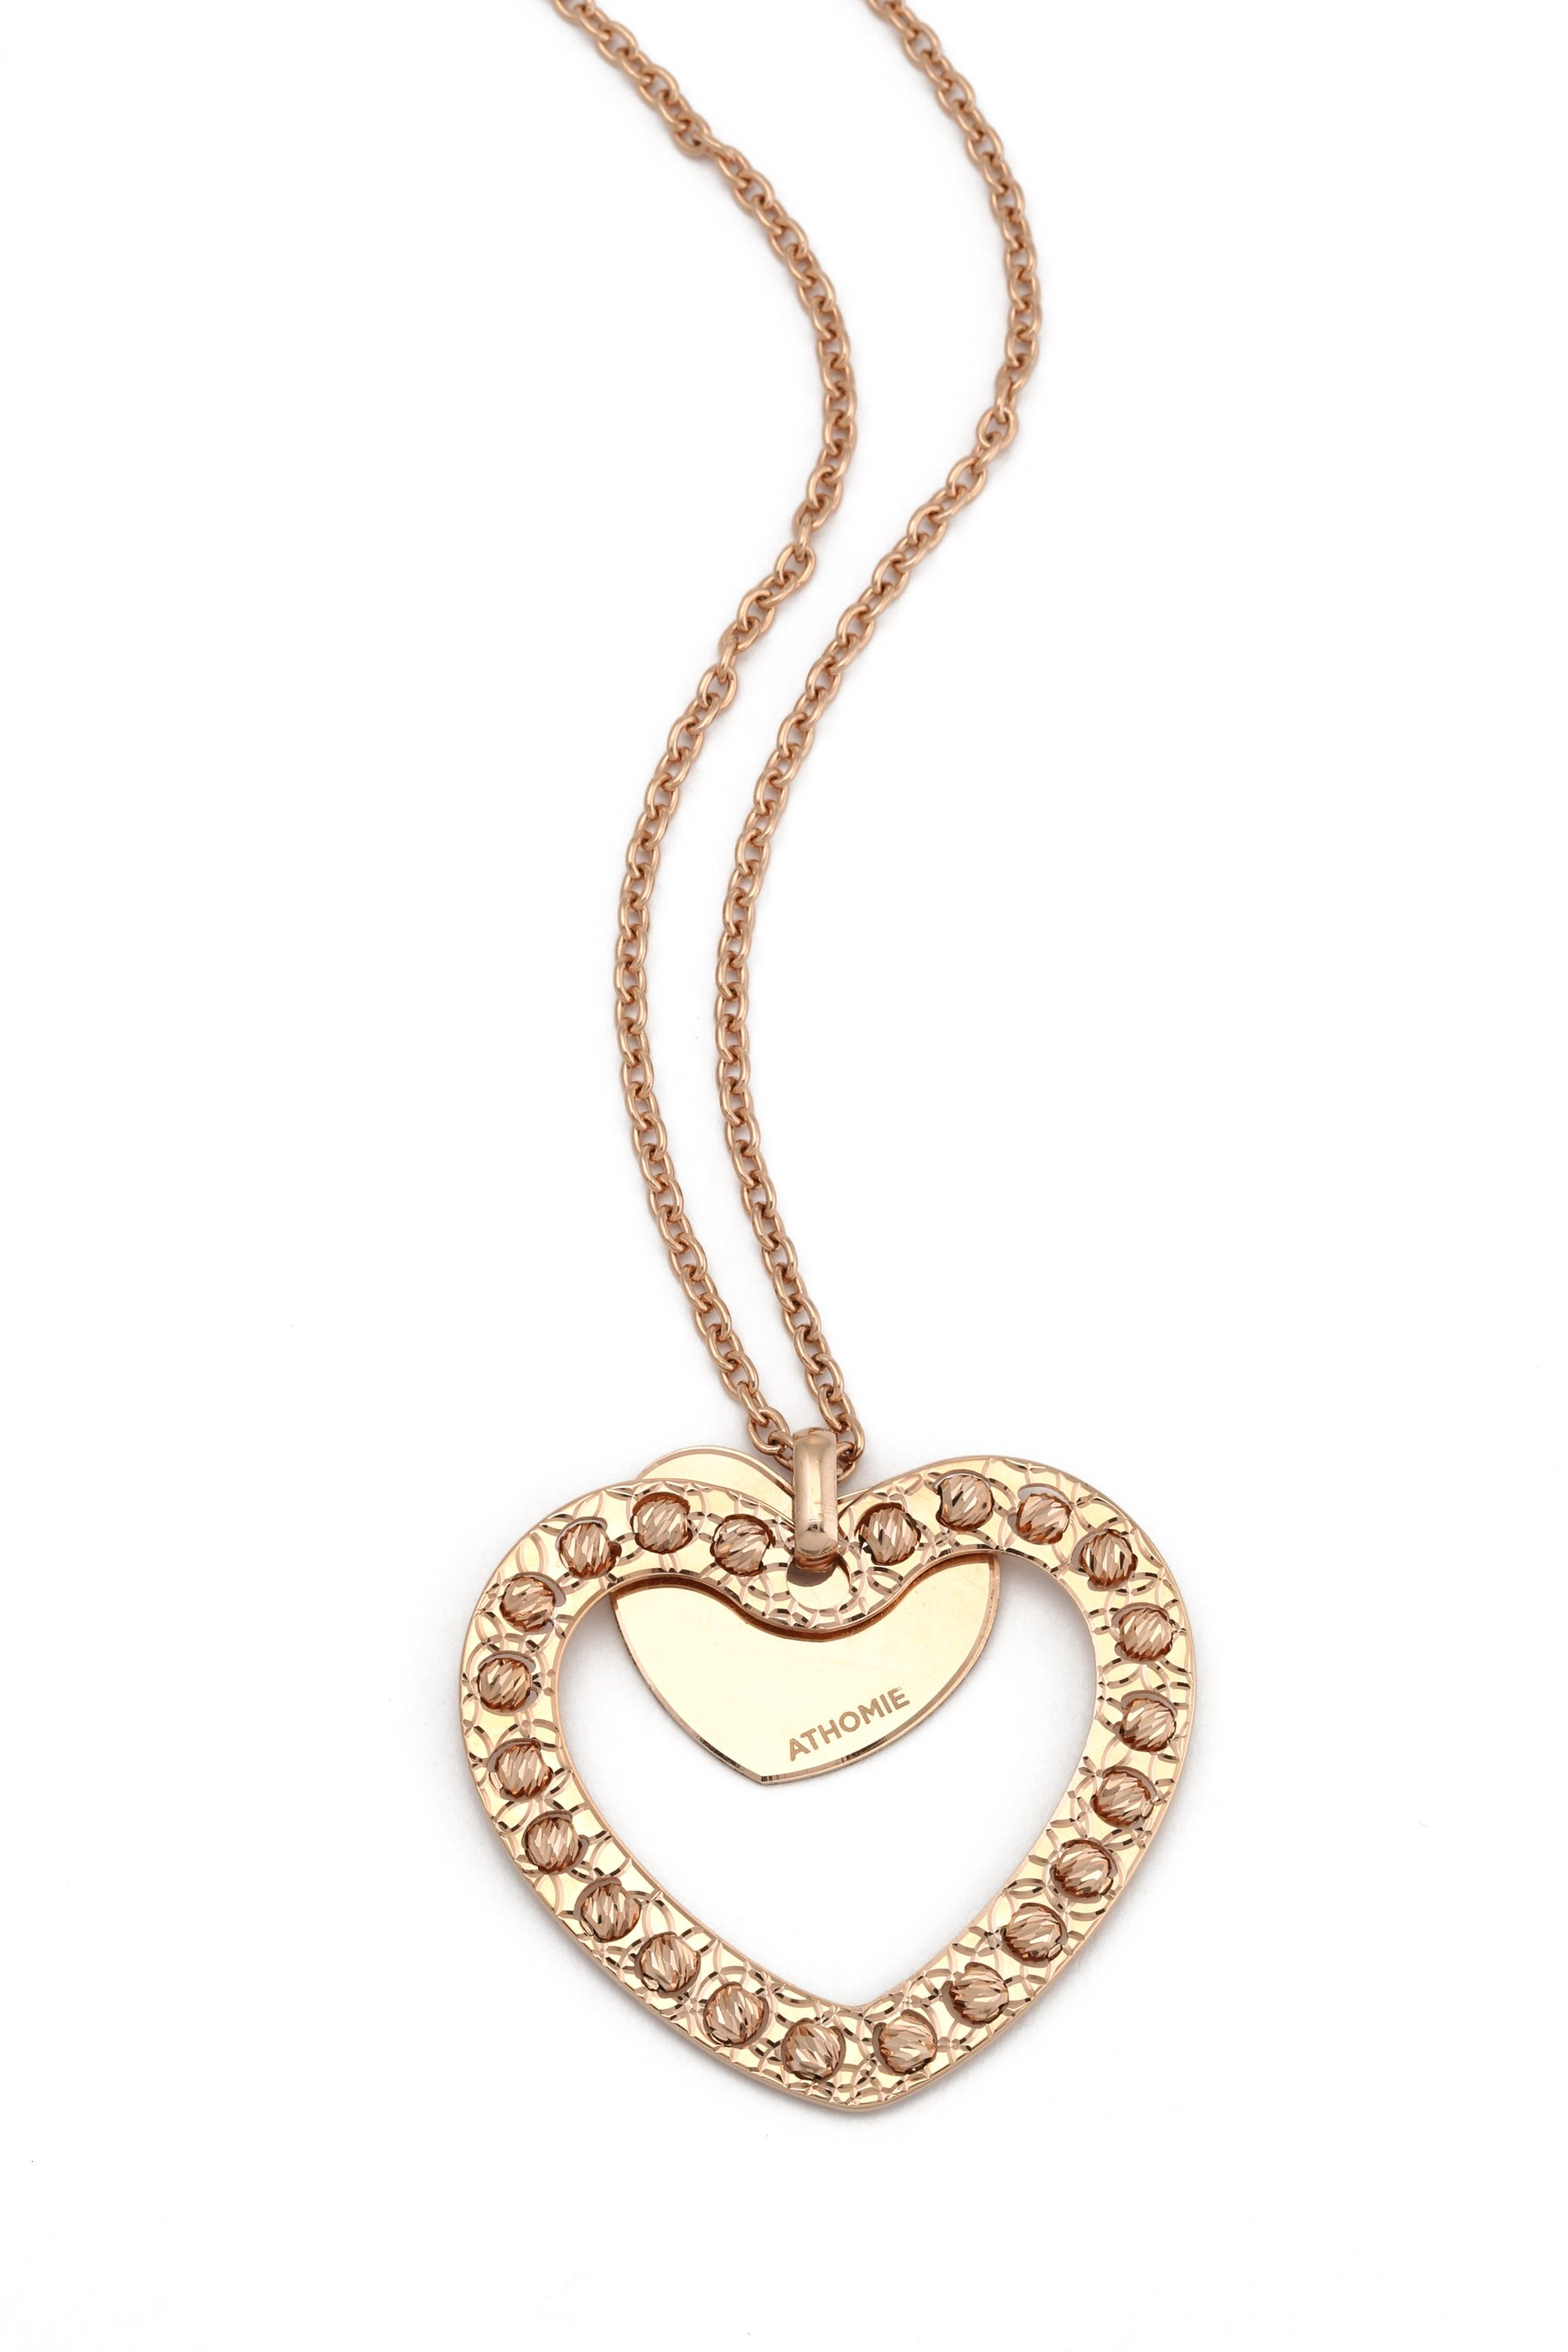 Handmade diamond cut 24ct rose goldheart pendant